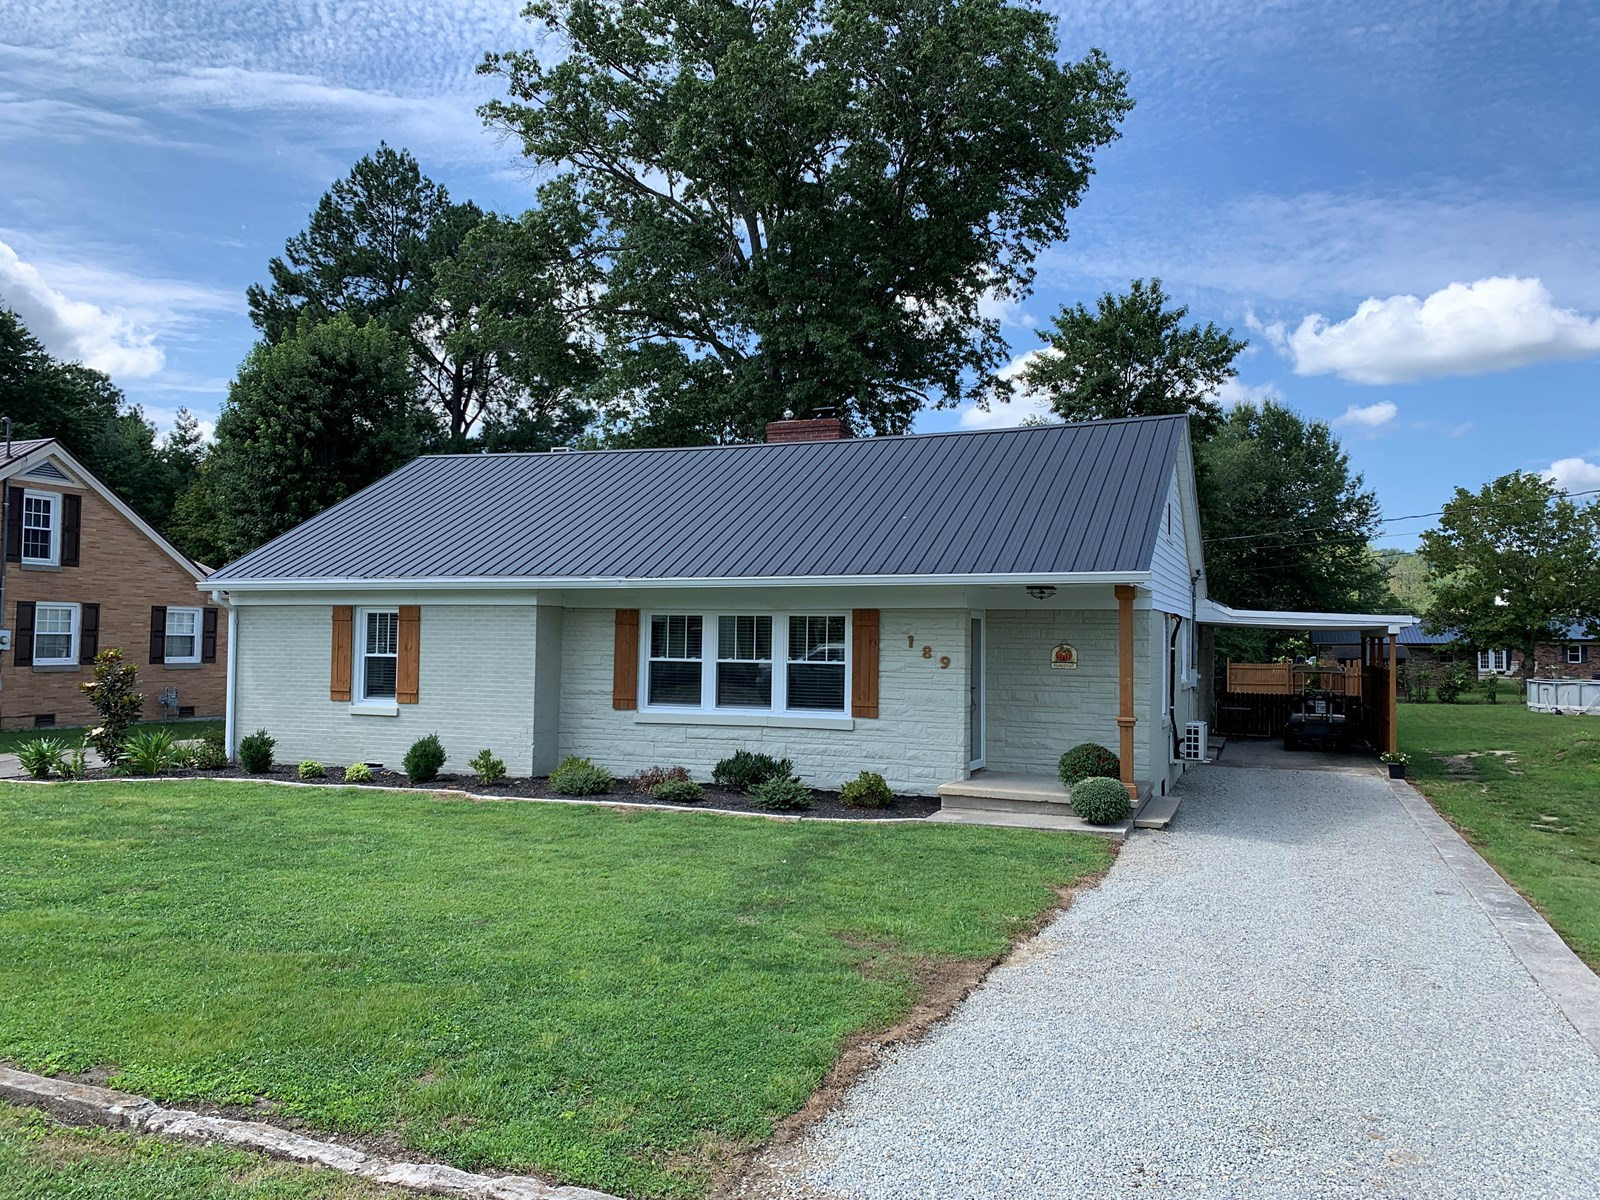 REMODELED HOME IN TOWN - LARGE MASTER SUITE - LIBERTY, KY.